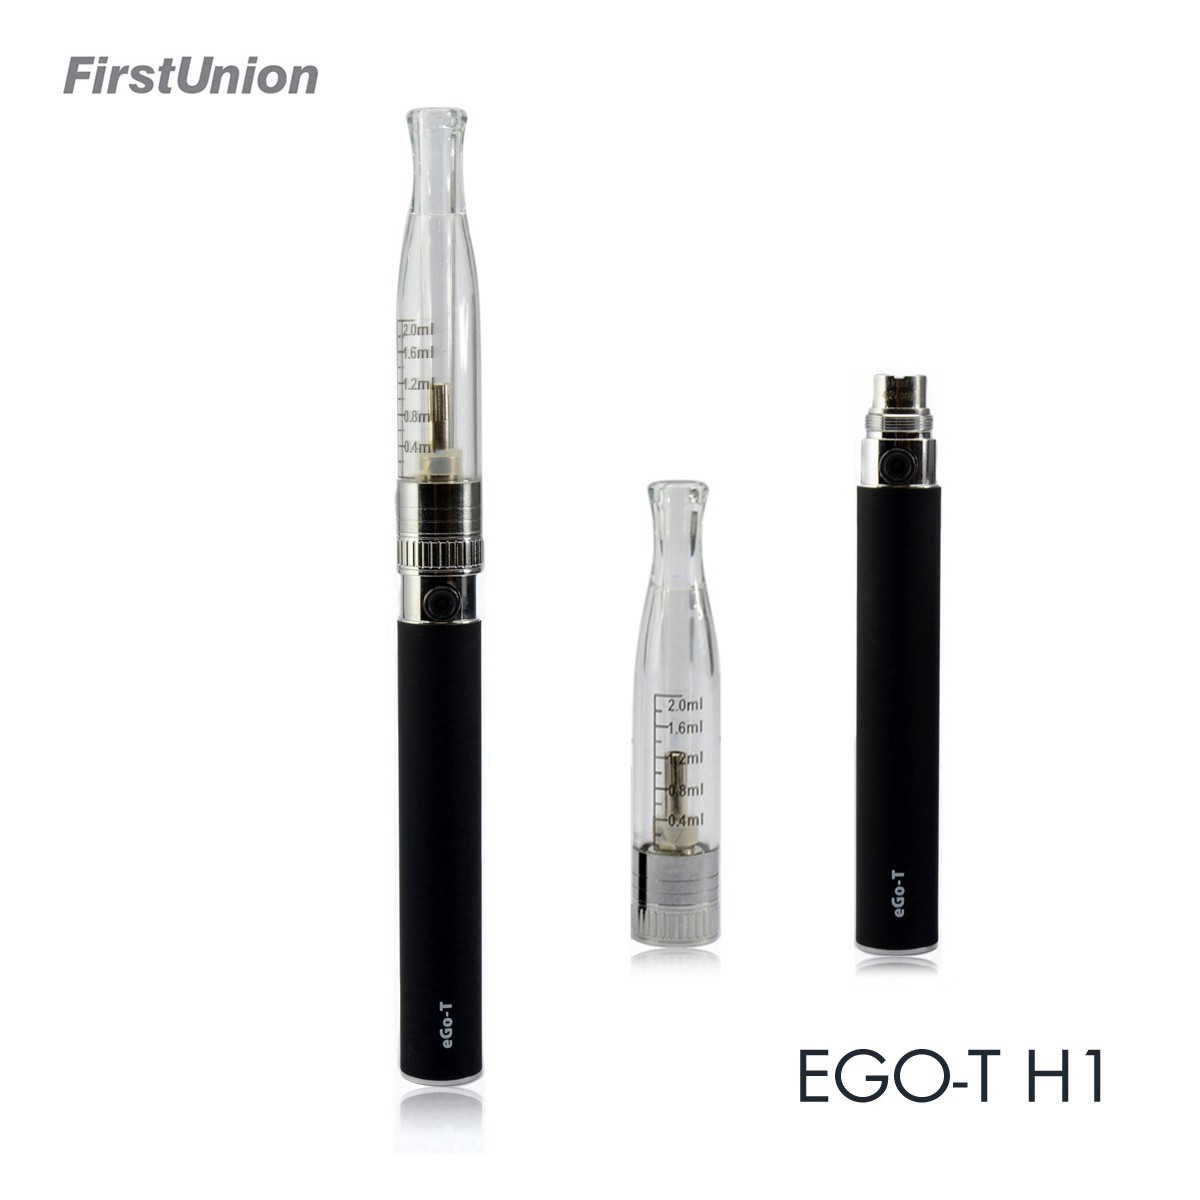 2014 hot sale vietnam electronic cigarette EGO-T H1 visible clearomizer ecigs china electronic cigarette factory